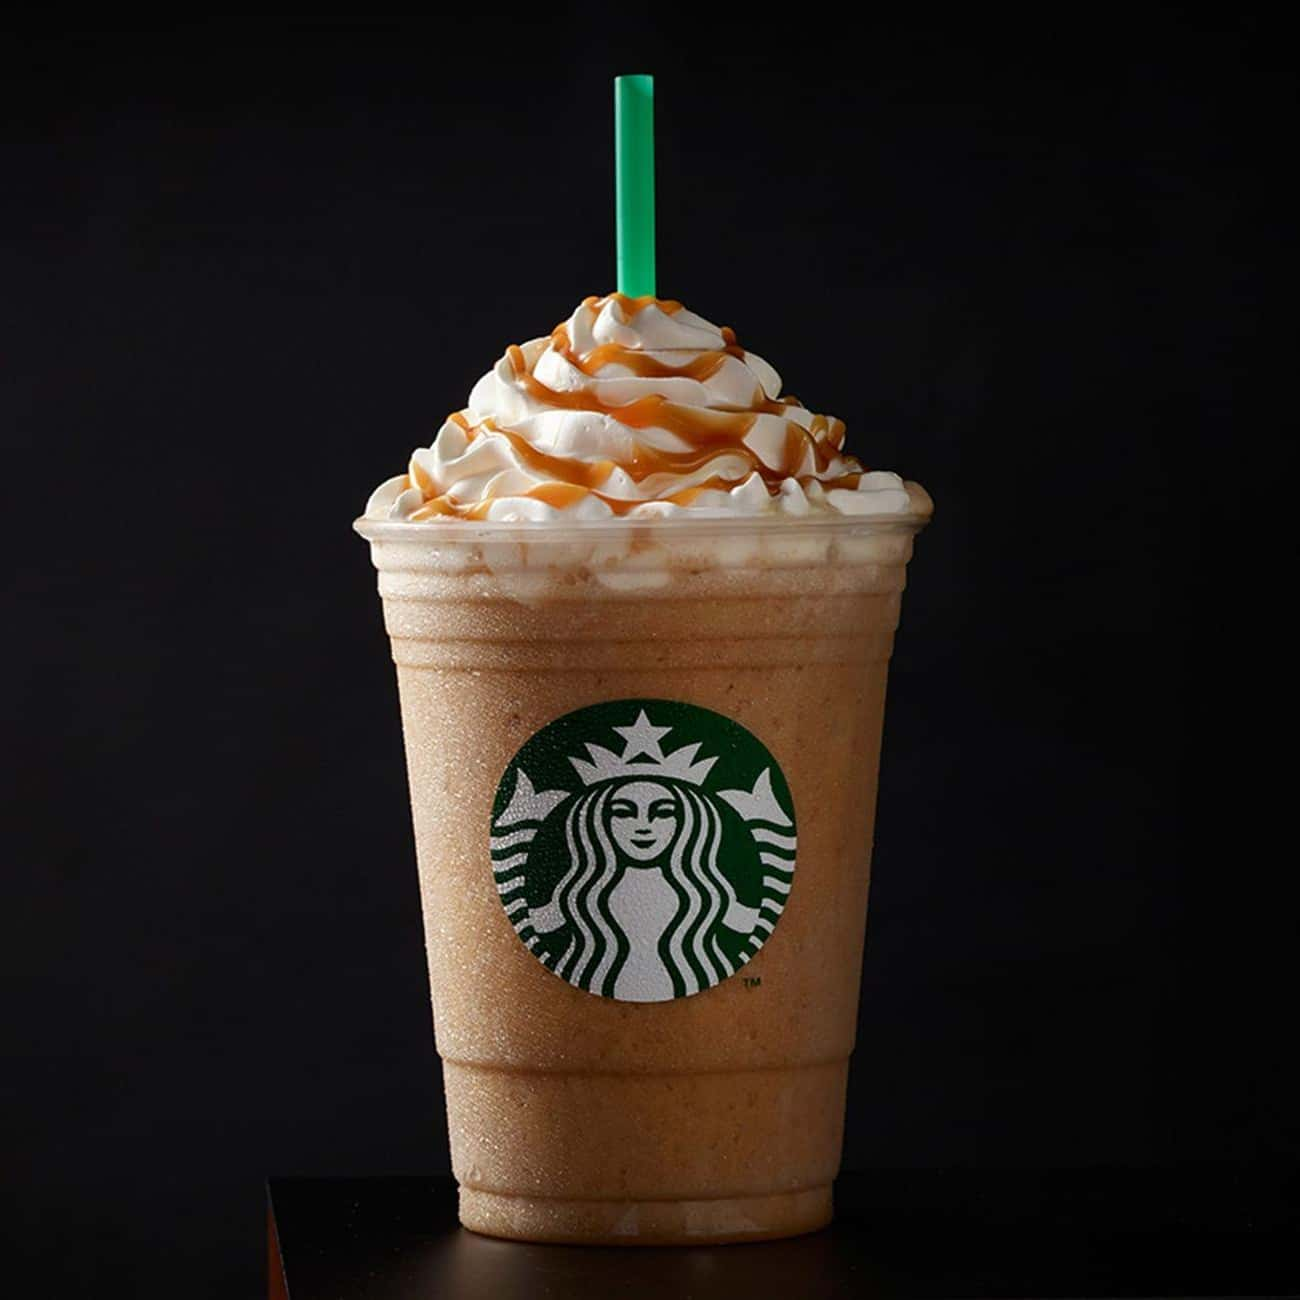 Caramel Frappuccino Blended Co is listed (or ranked) 1 on the list The Best Frappuccino Flavors At Starbucks